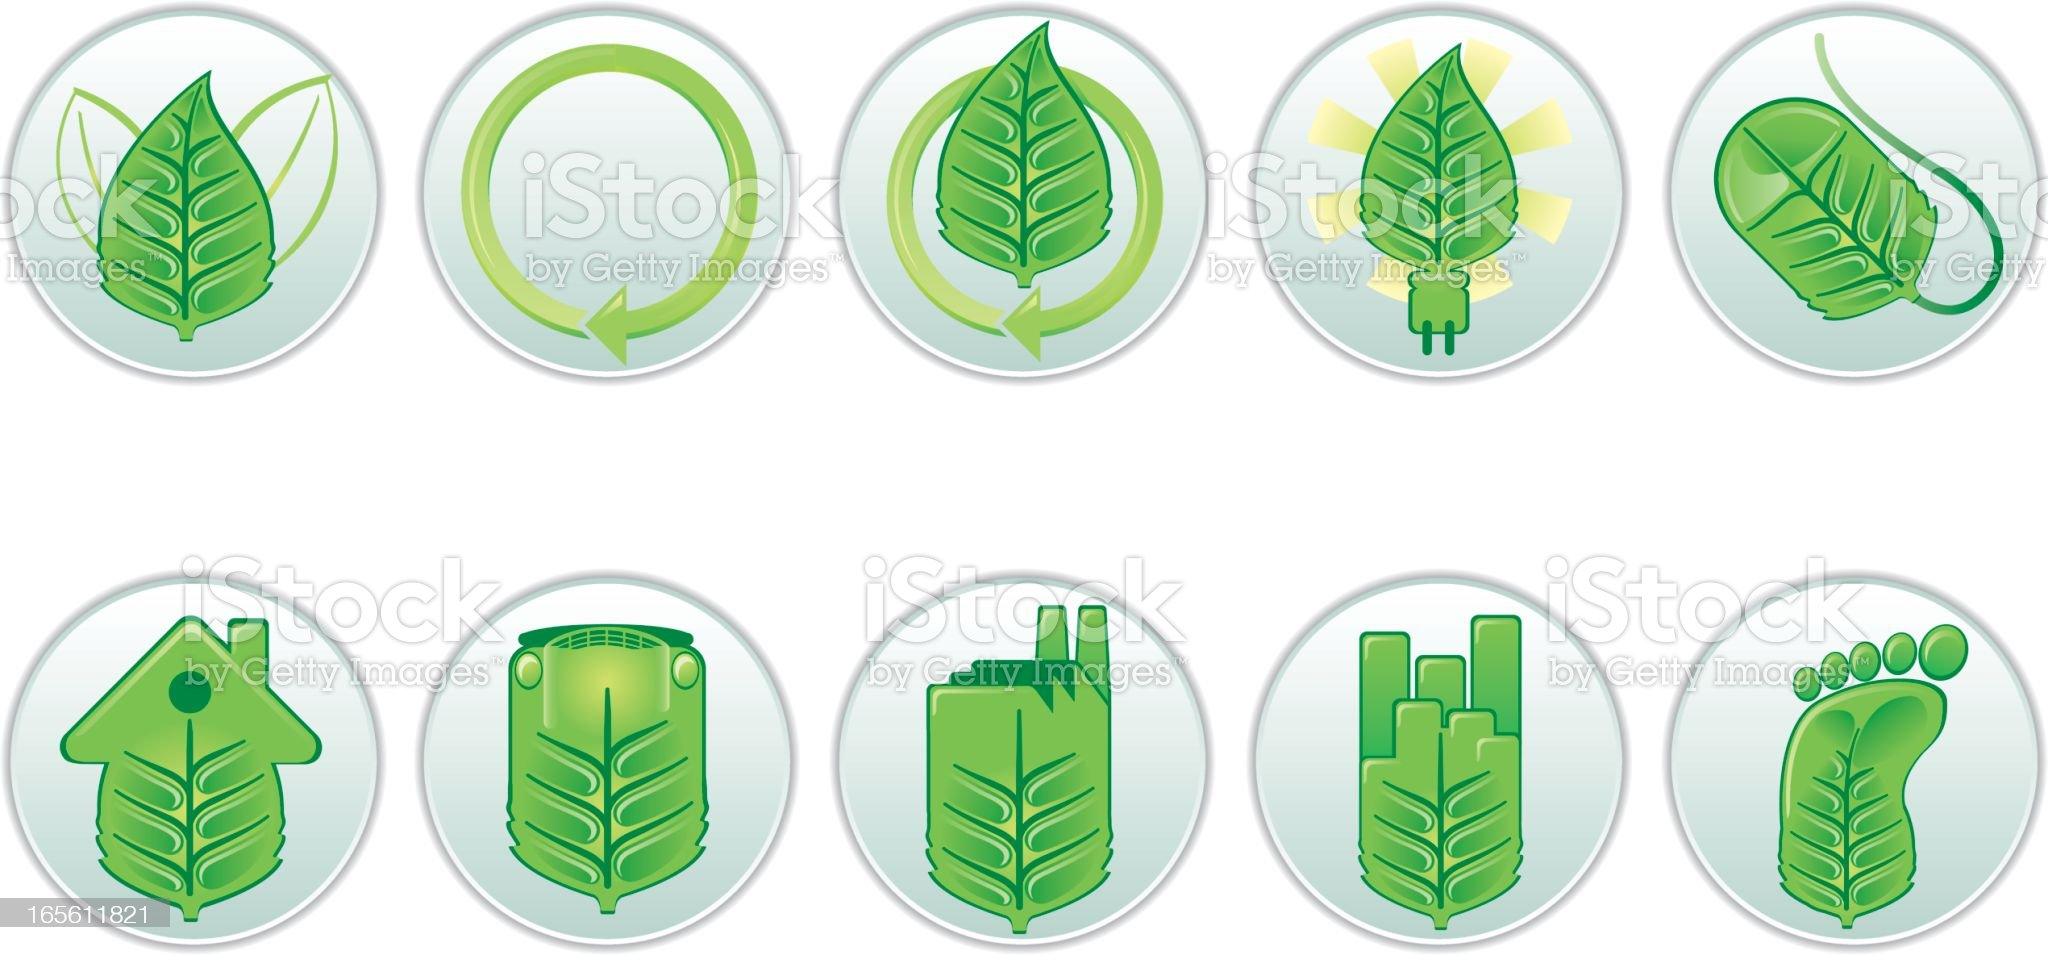 Green Leaf Buttons royalty-free stock vector art